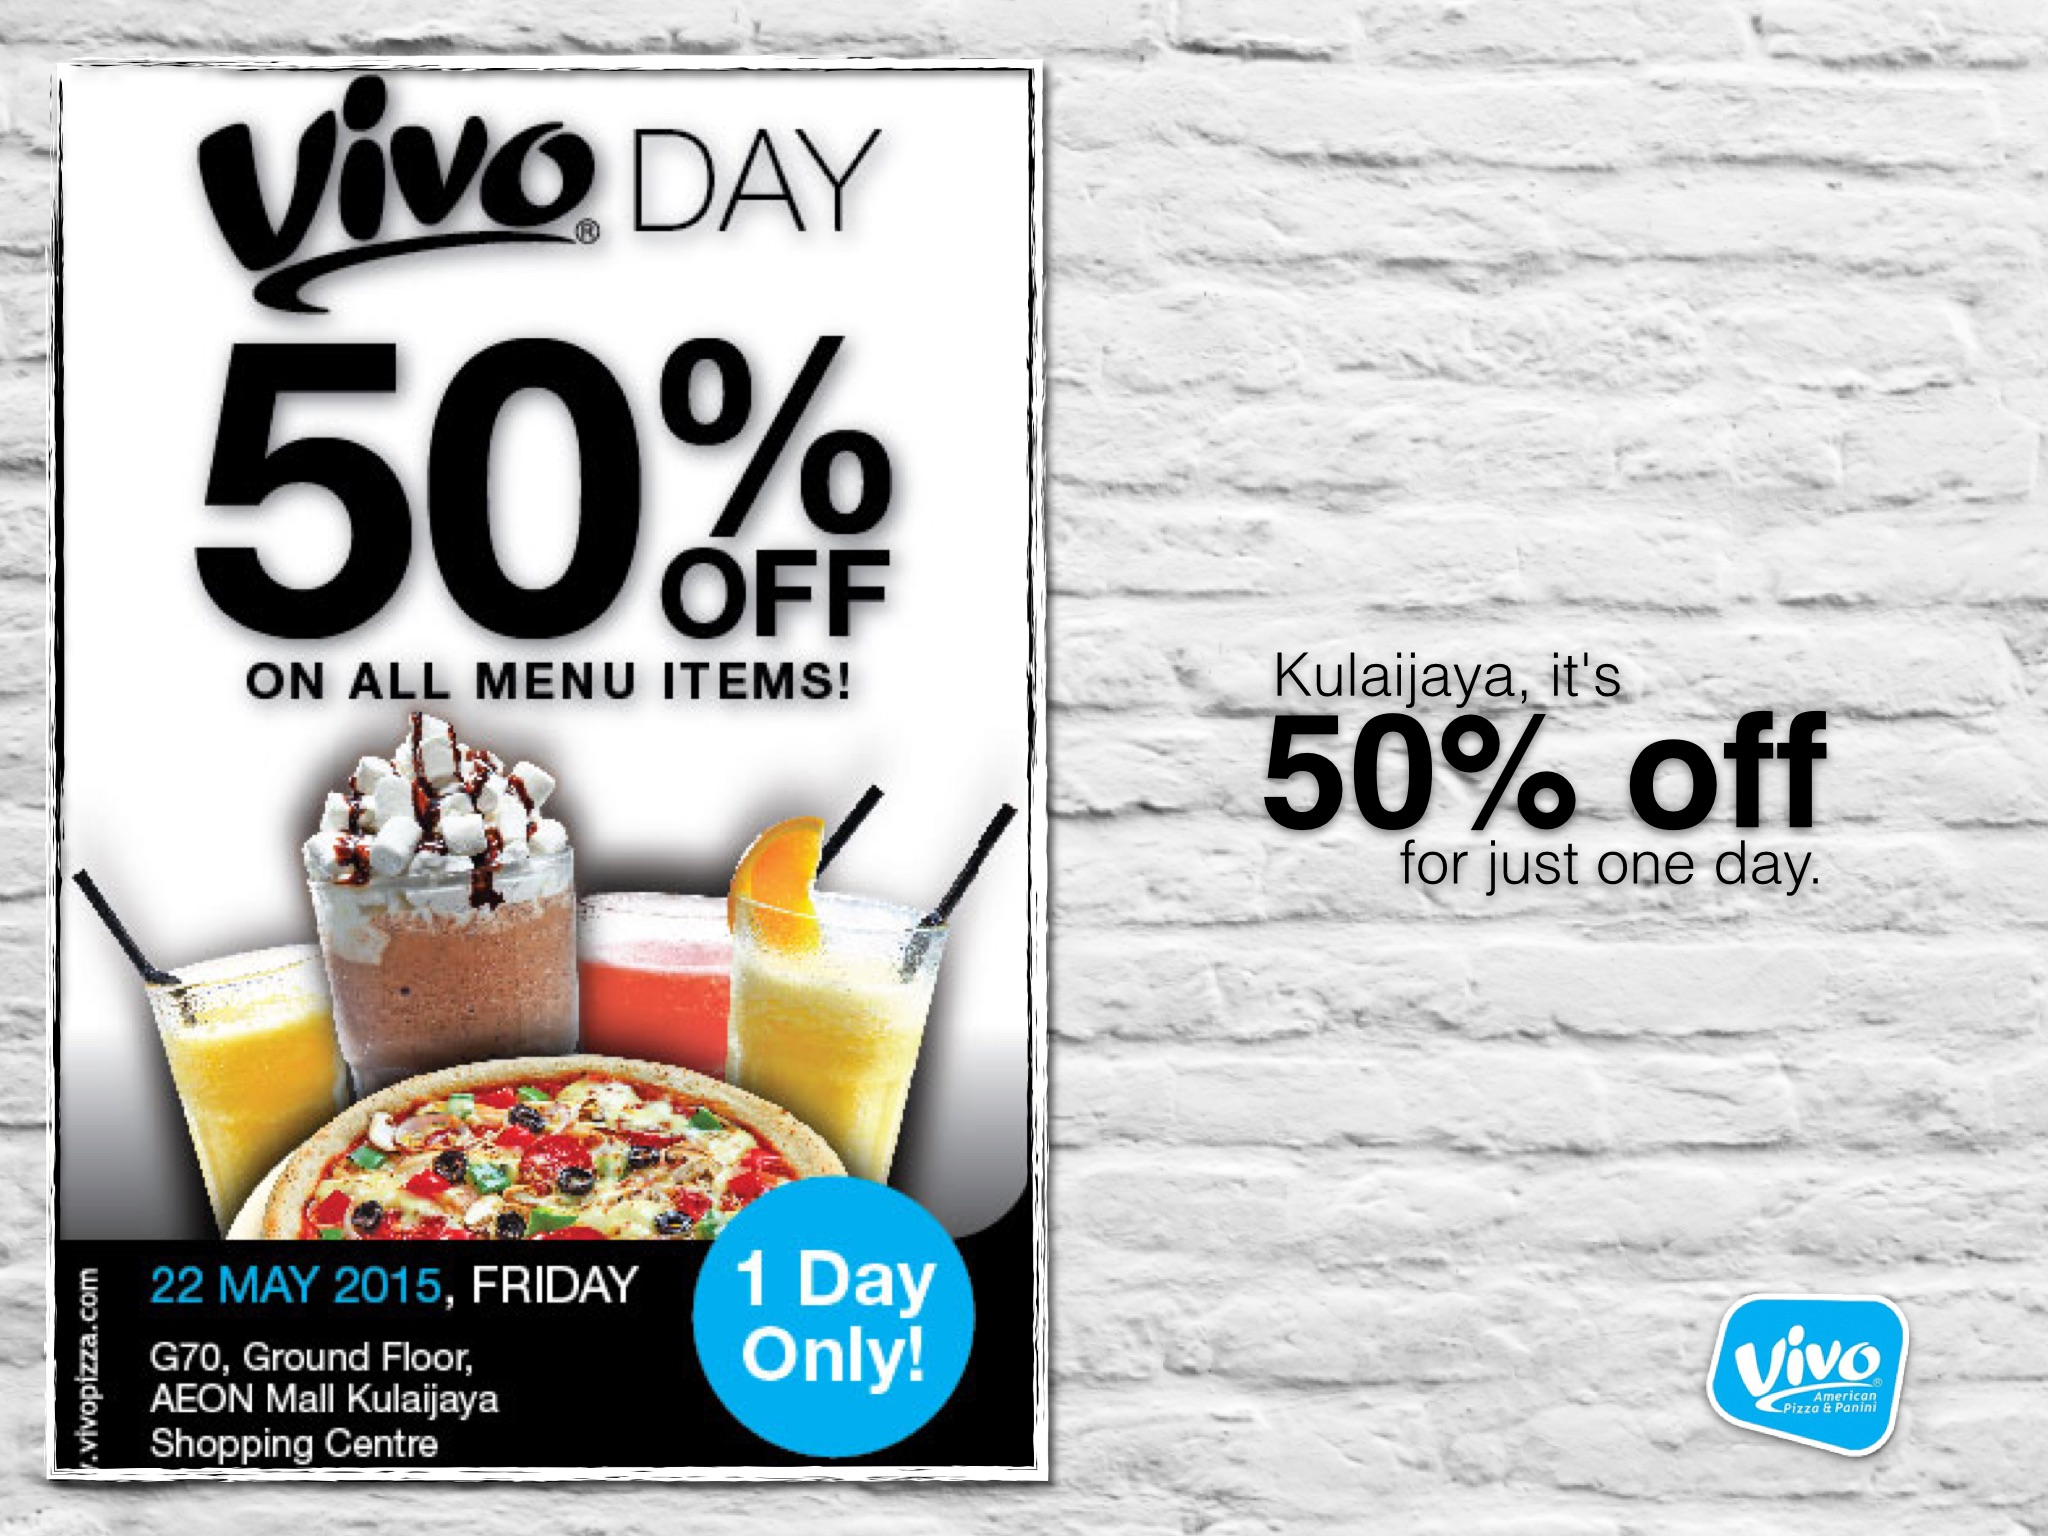 Vivo® Day Kulaijaya